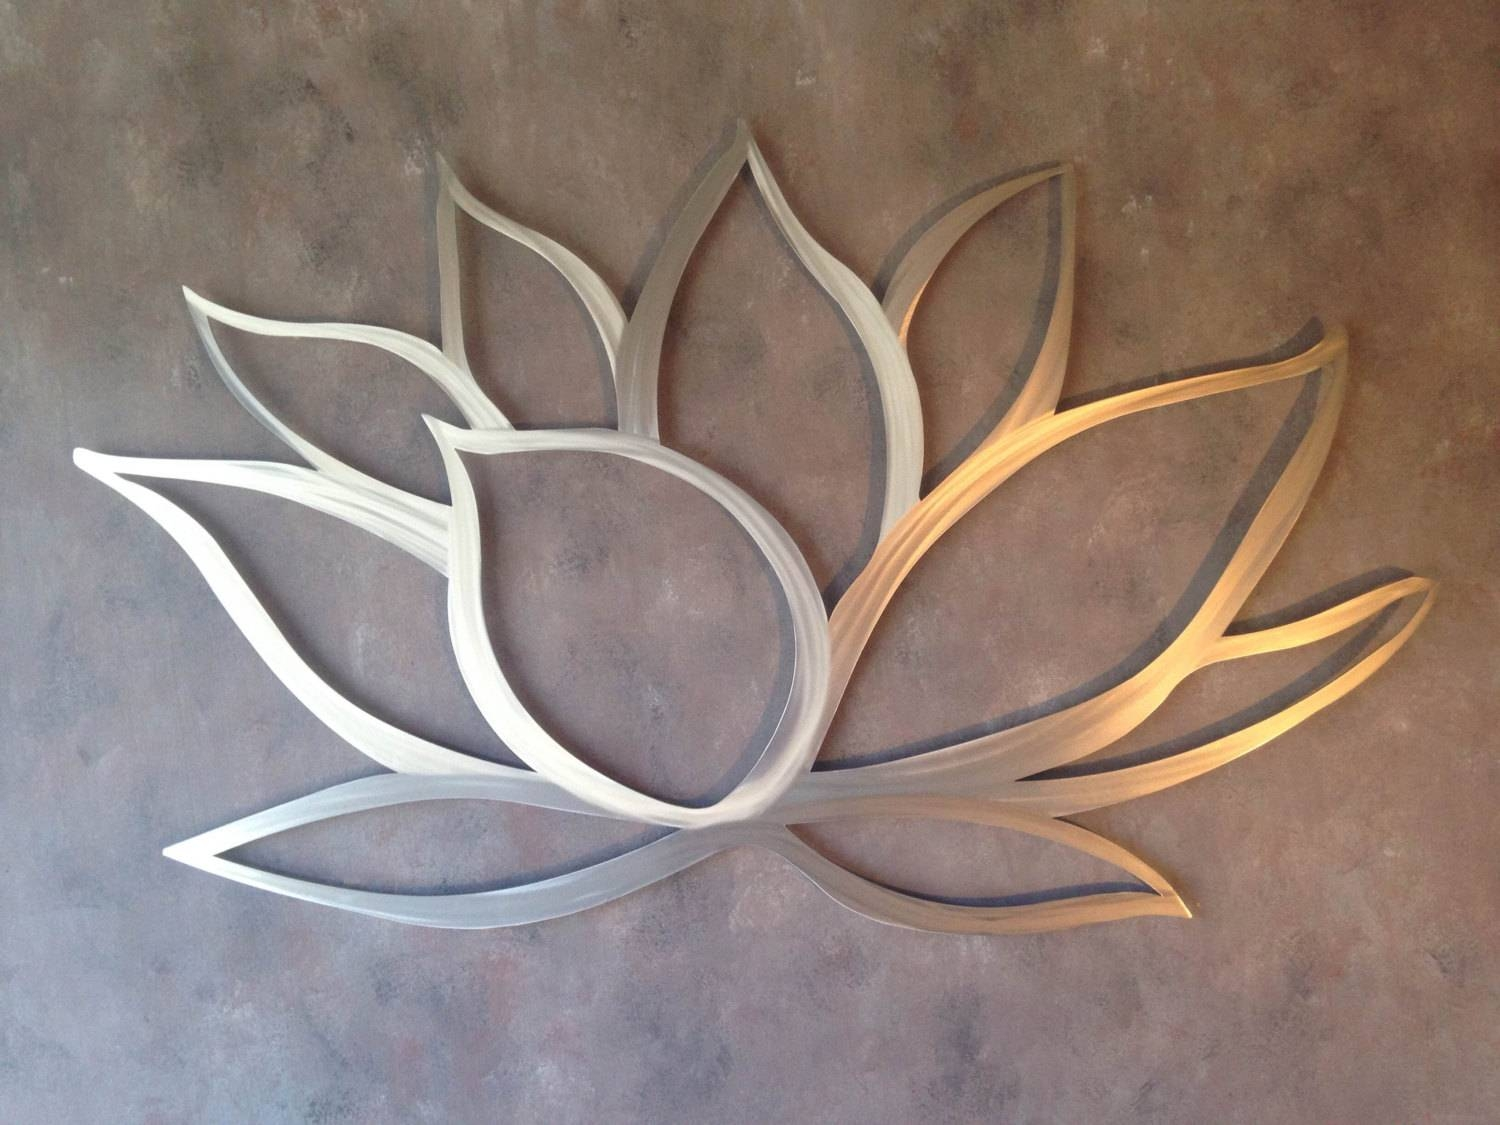 Appealing Metal Wall Artwork 126 Metal Wall Decor Canada Full Throughout 2017 Cool Metal Wall Art (View 2 of 20)